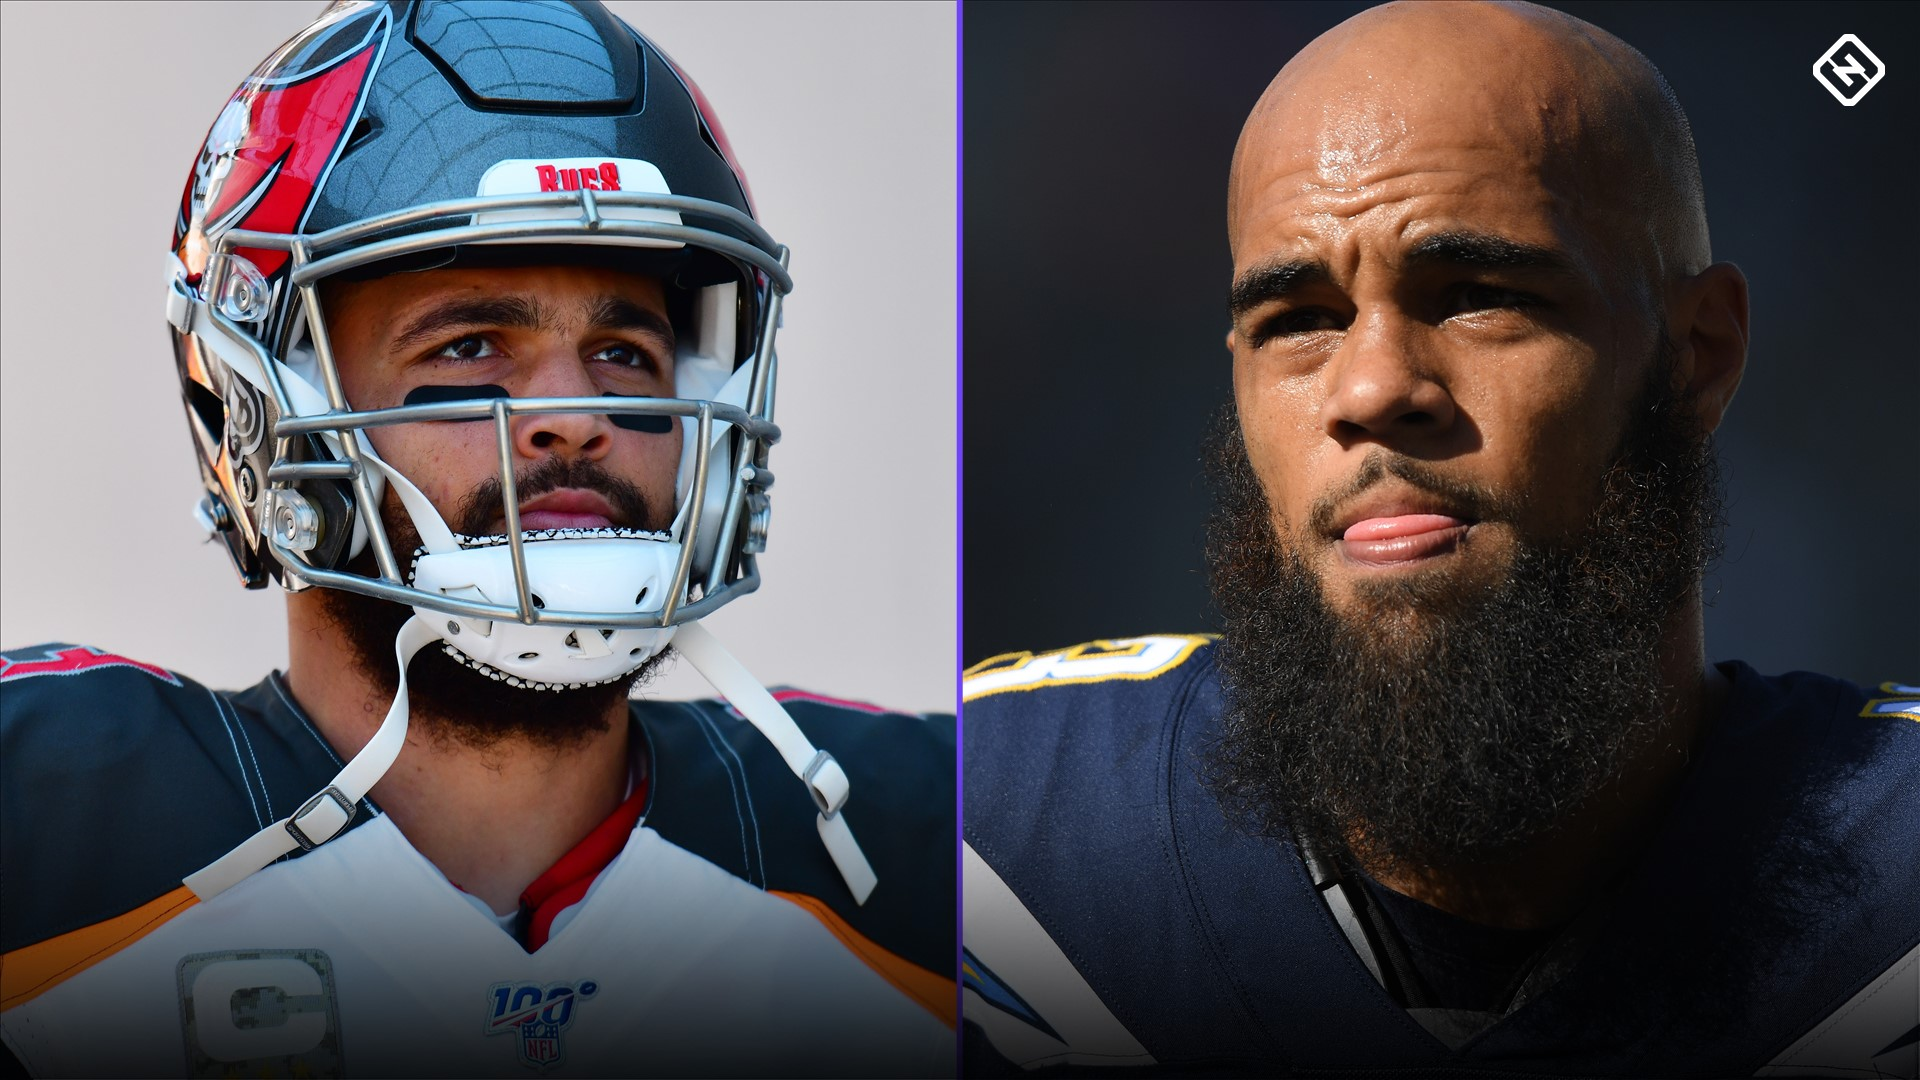 Mike Evans tells Keenan Allen 'you not on my level' during Twitter fight over NFL Top 100 rankings 1